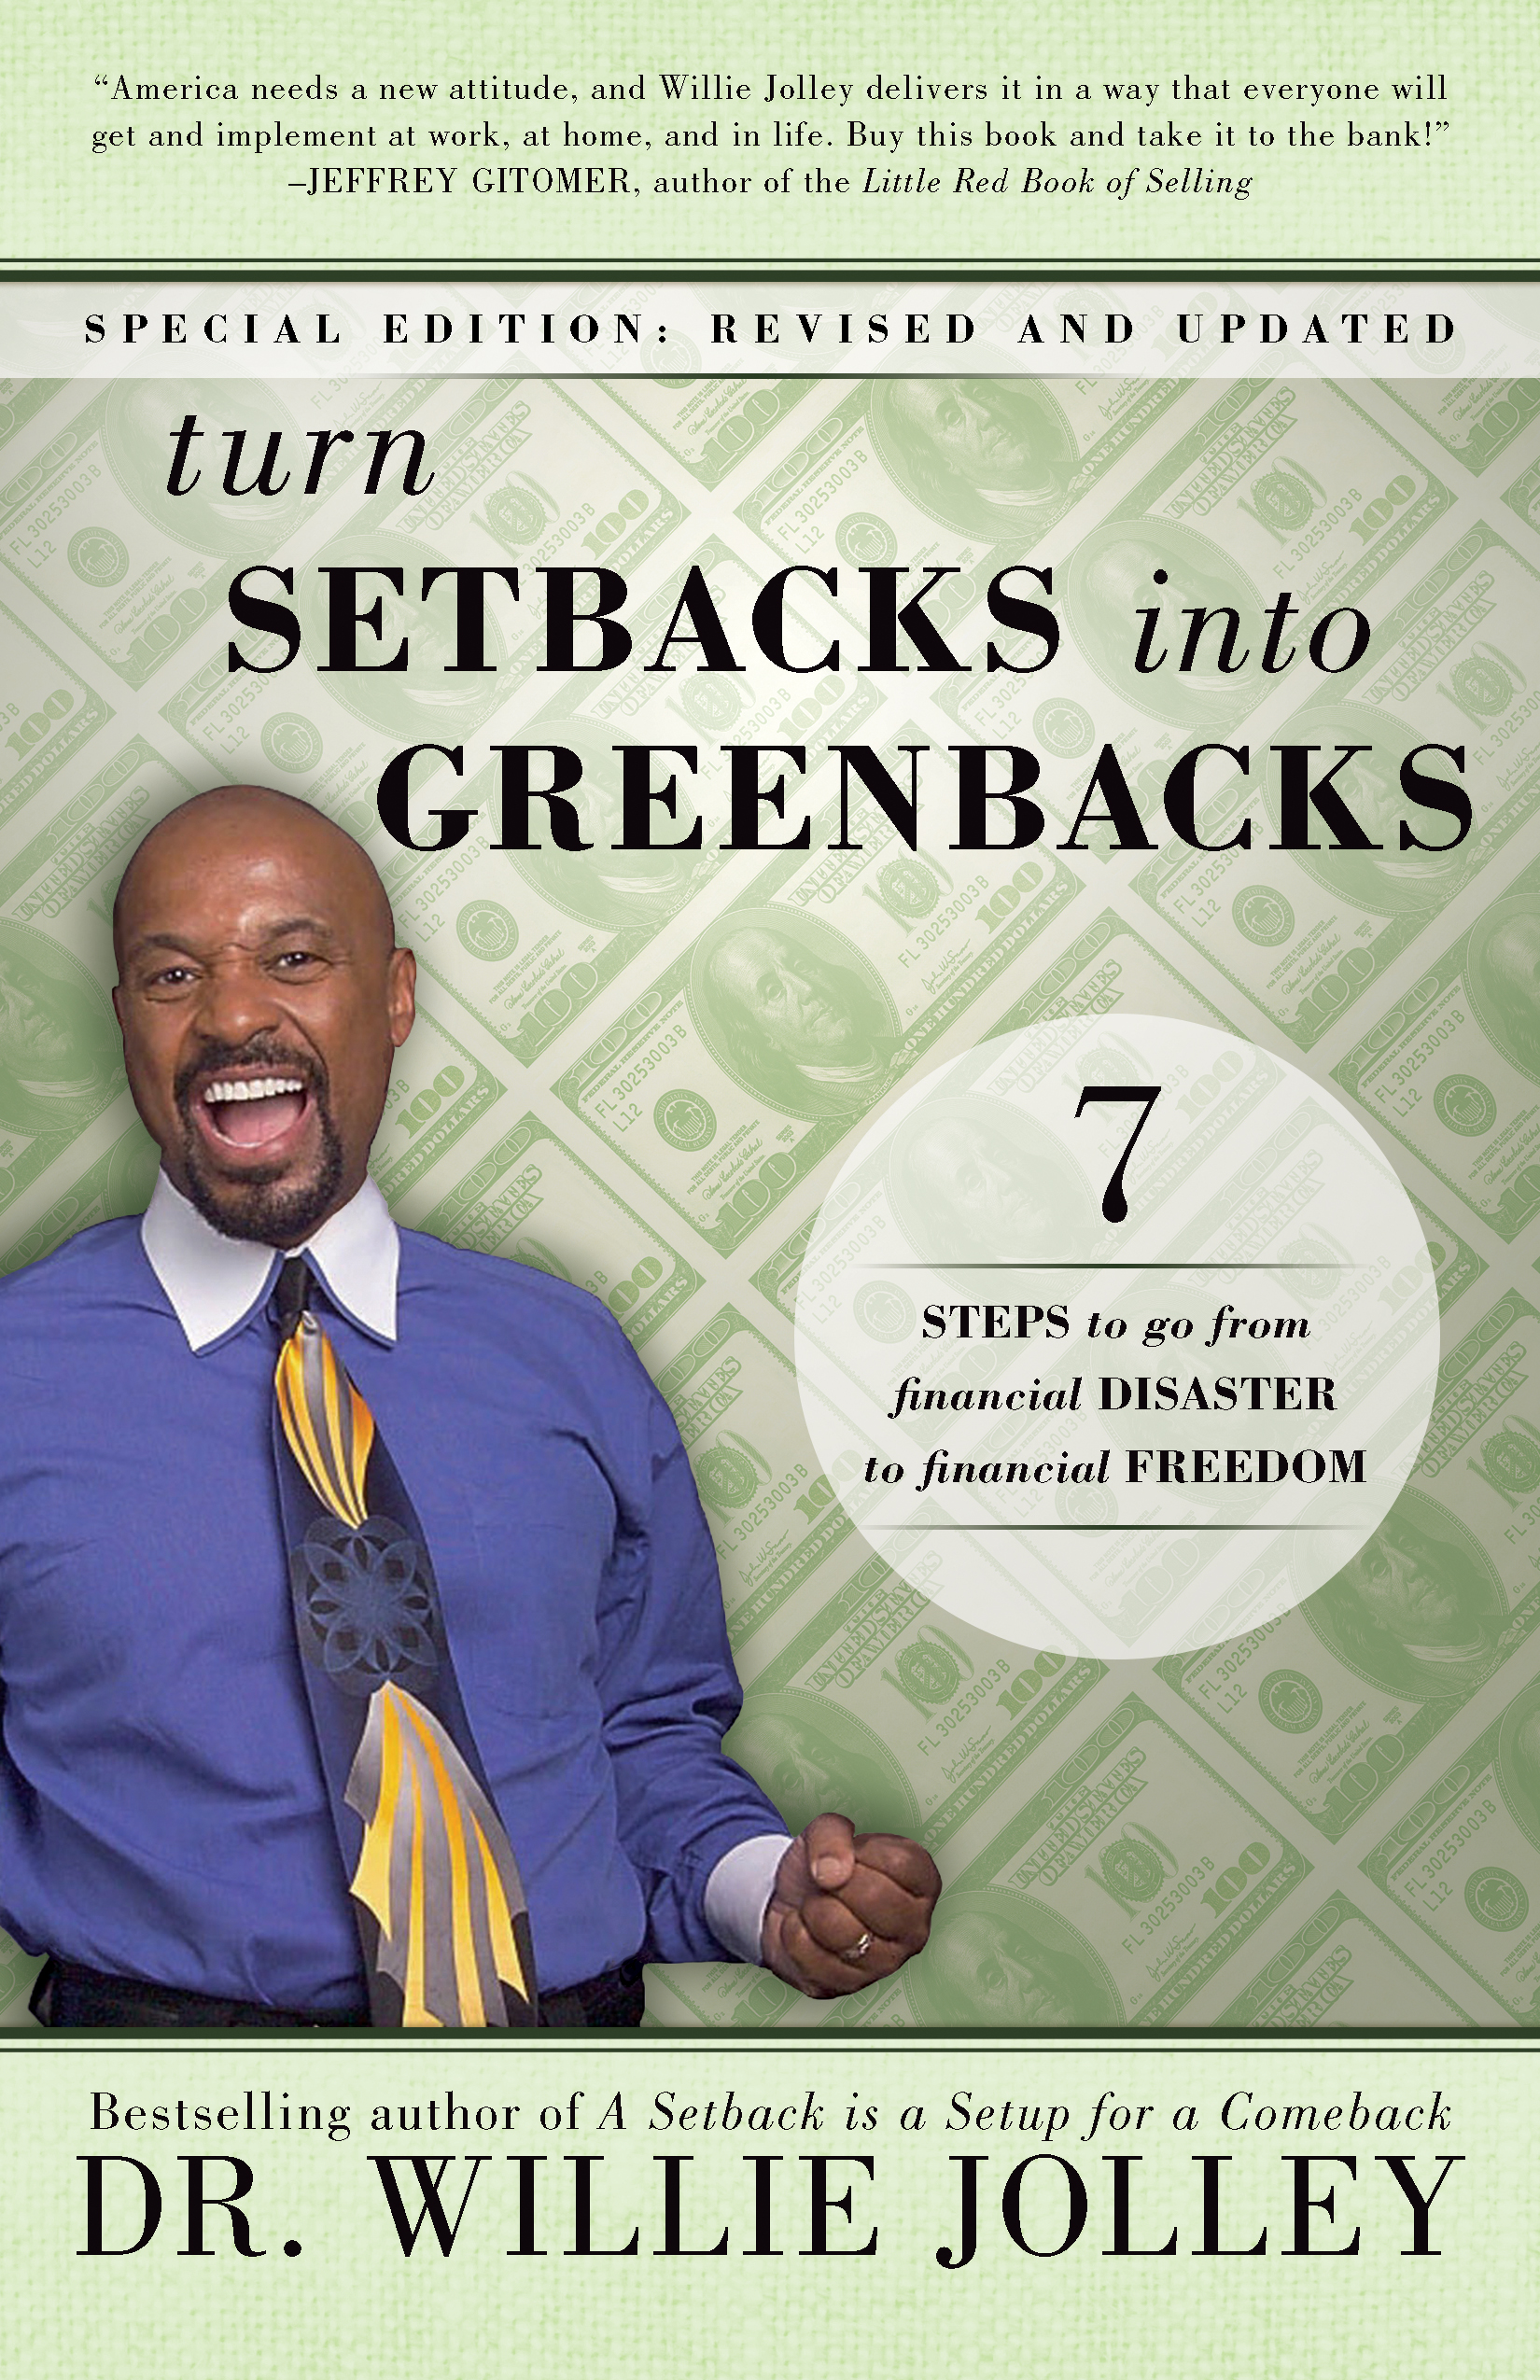 Turn Setbacks into Greenbacks - Dr. Willie Jolley